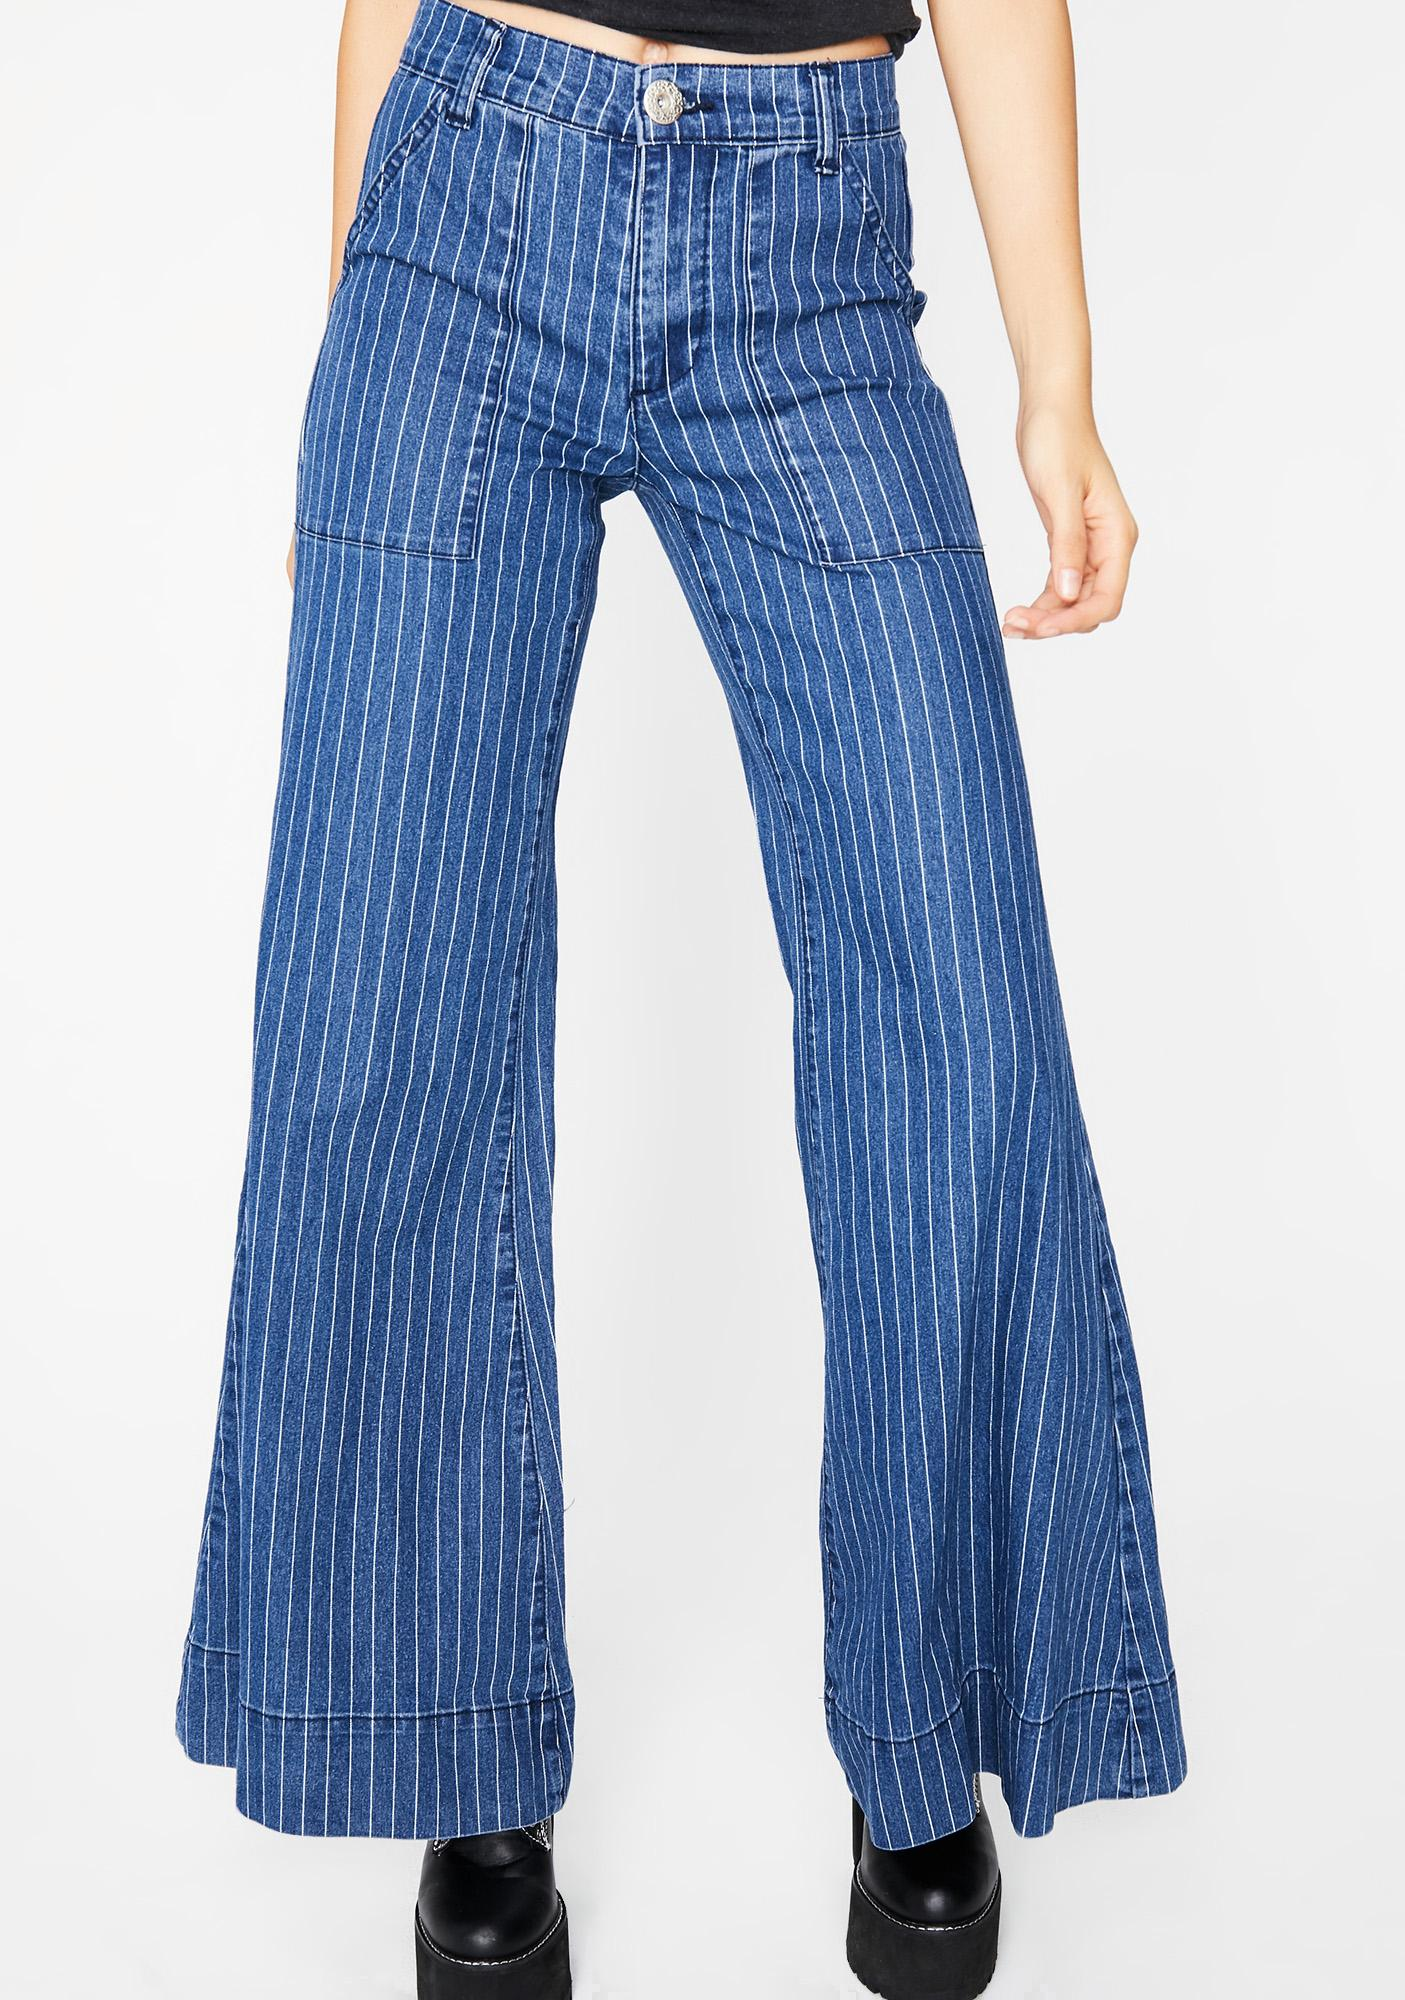 Familiar Groove Denim Pants